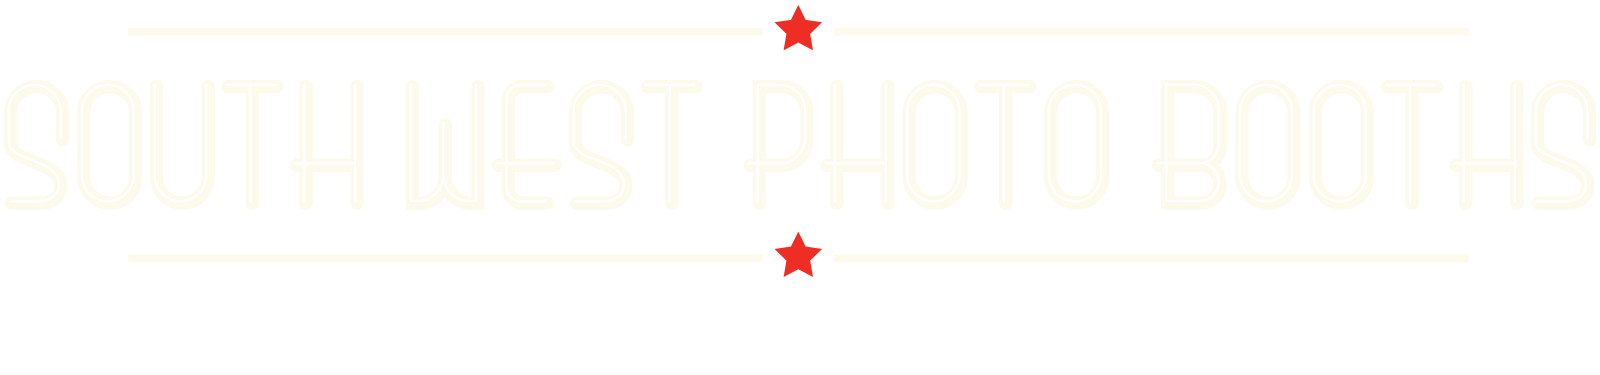 South West Photo Booths - Luxury Photo Booth Hire in the South West of England